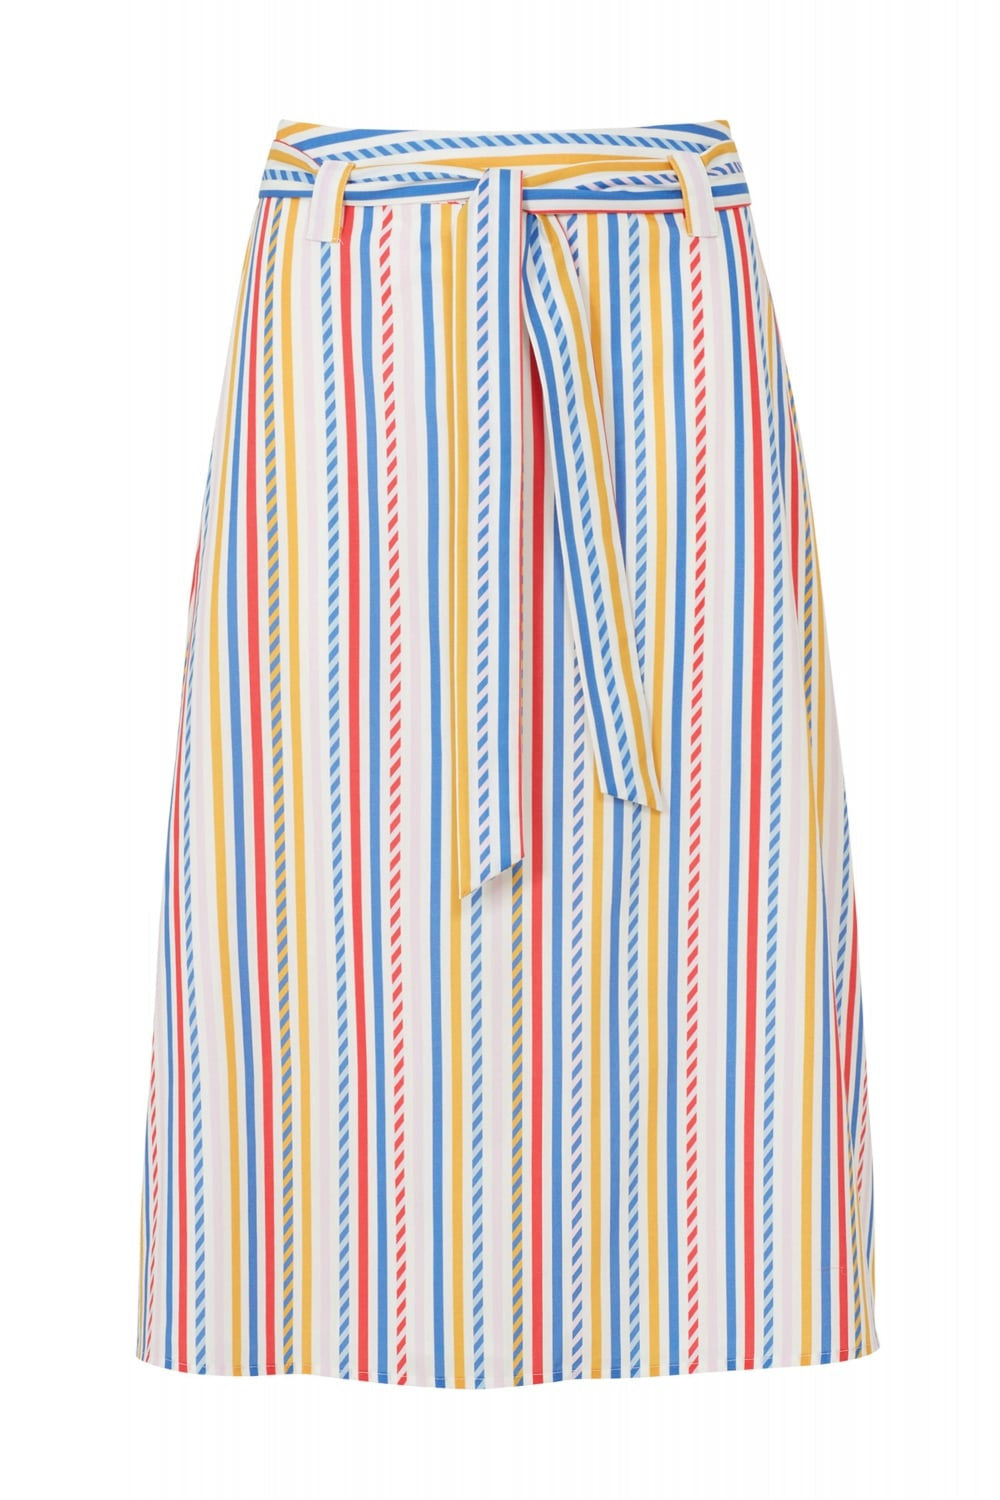 Candy Stripe Skirt